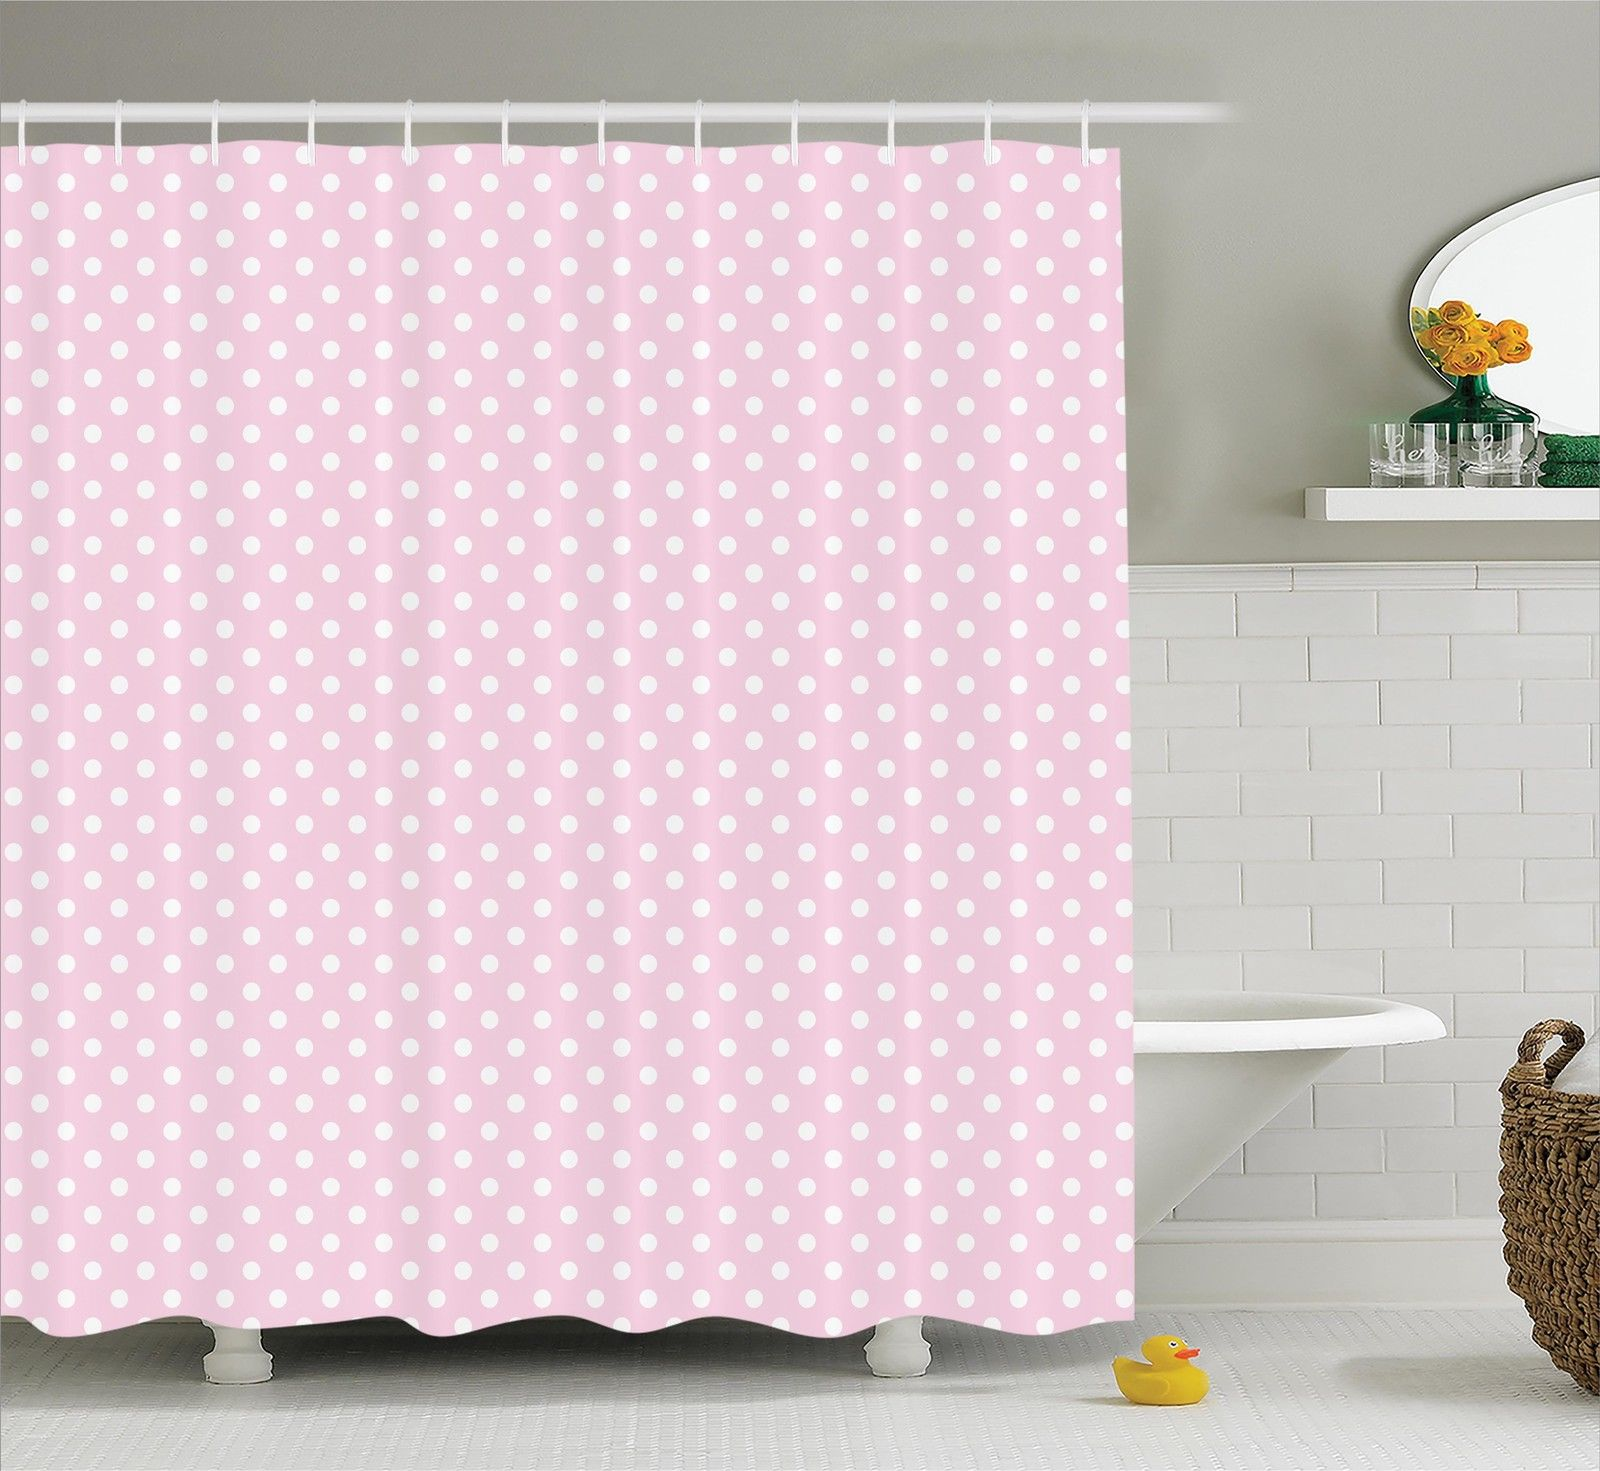 Polka Dots Home Decor  Tiny Little Retro Polka Dots Vintage Style Bridal Nursery Kids Room Pattern, Bathroom Accessories, 69W X 84L Inches Extra Long, By Ambesonne